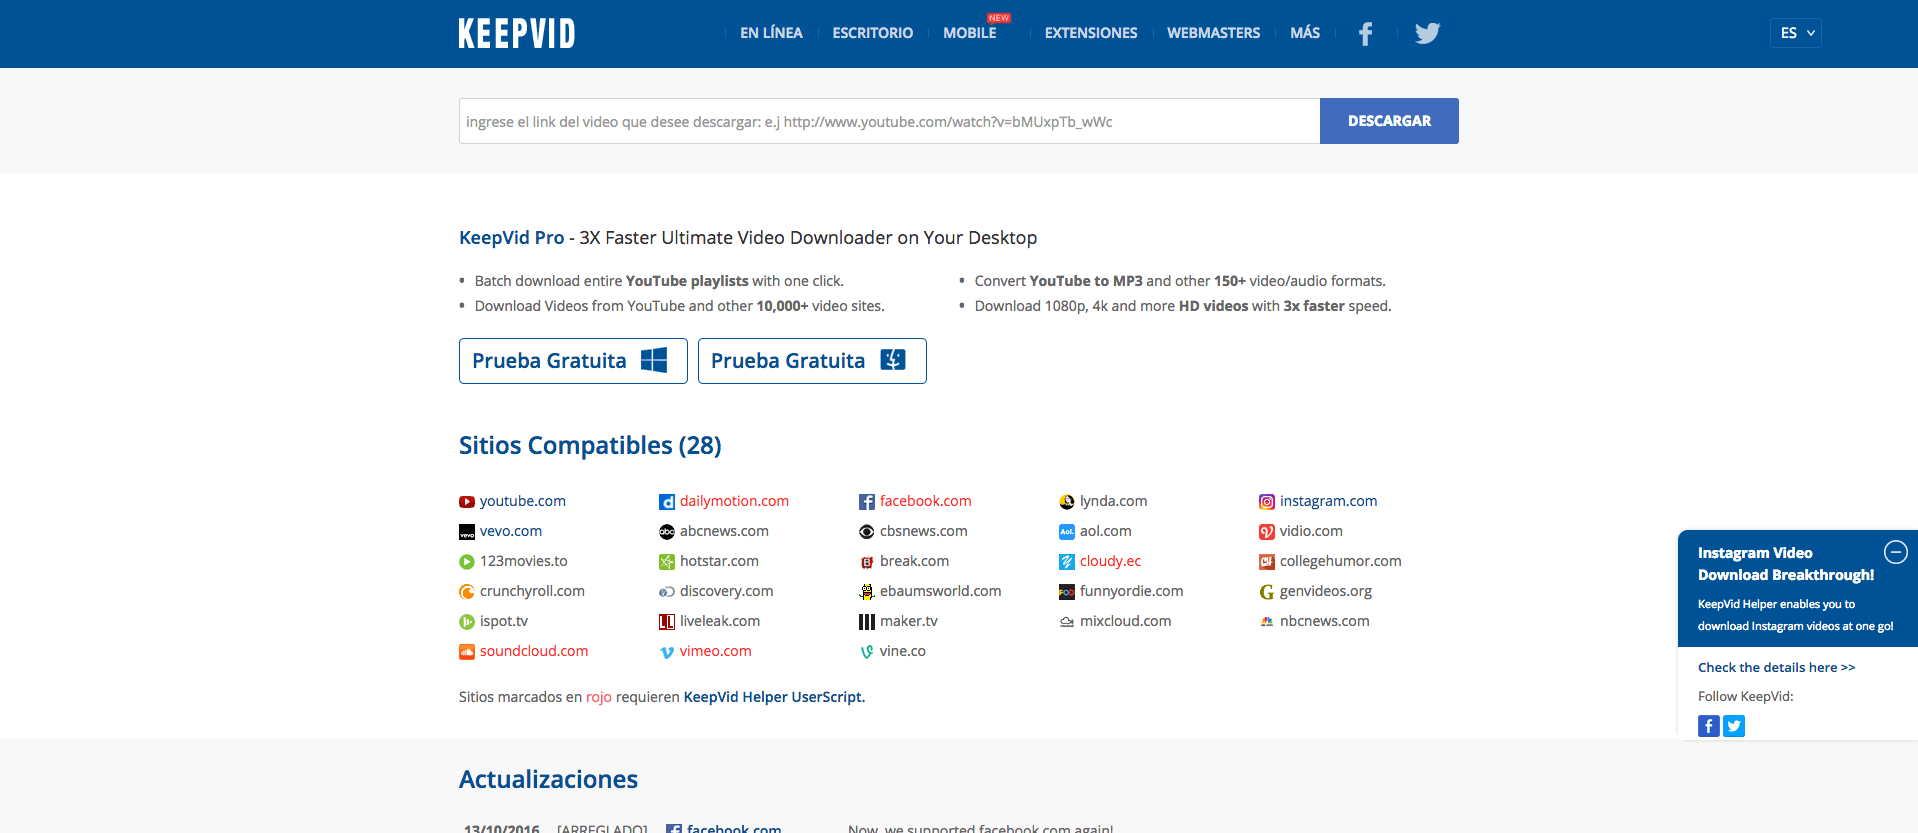 KeepVid plataforma de descarga de videos y musica